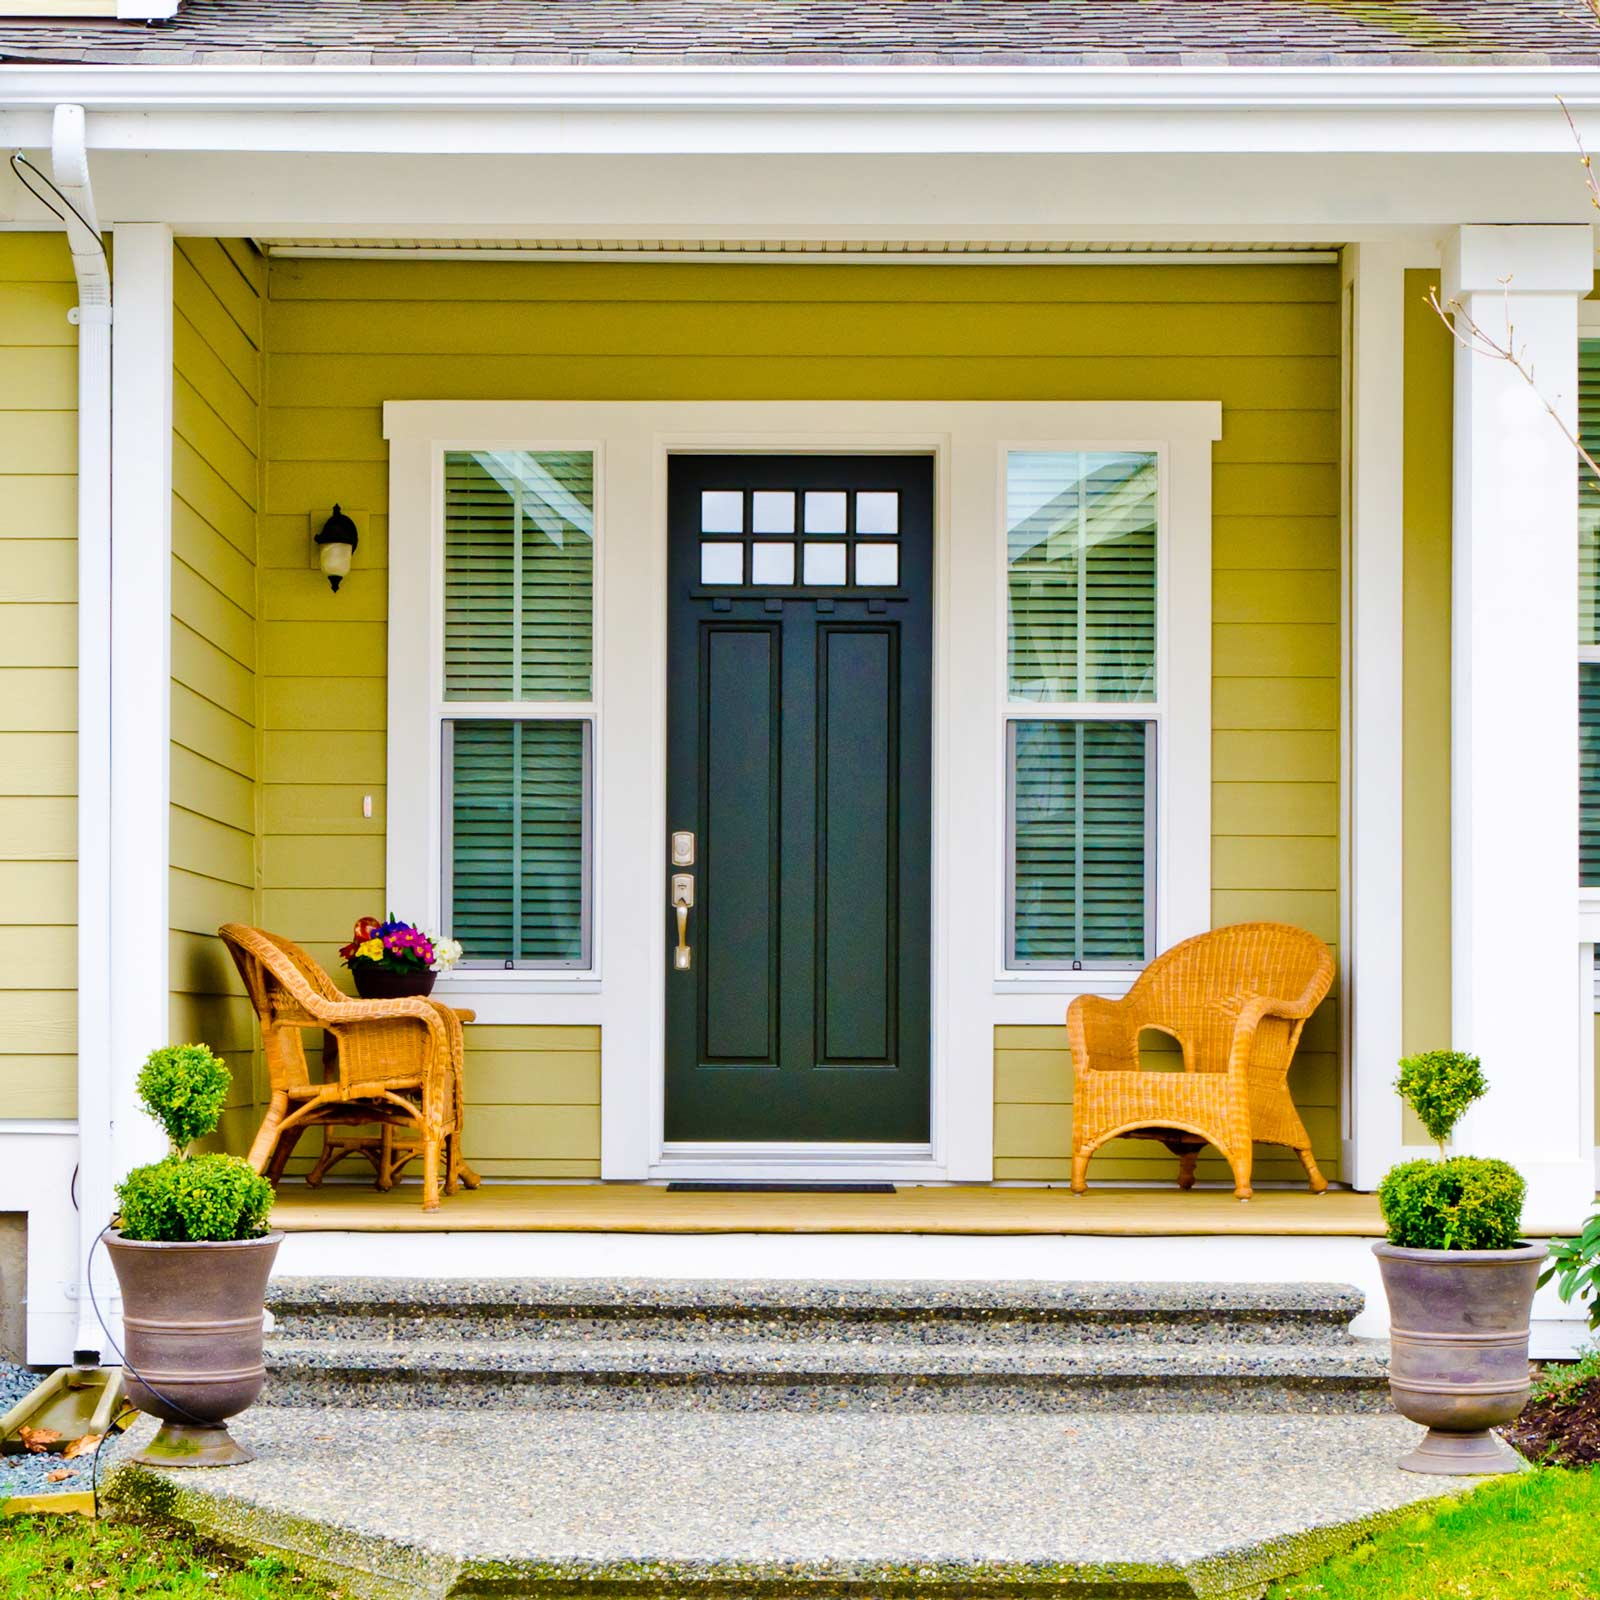 Zillow List Rental: Low Down Payment Mortgage Options: Home Loans With 3% Down